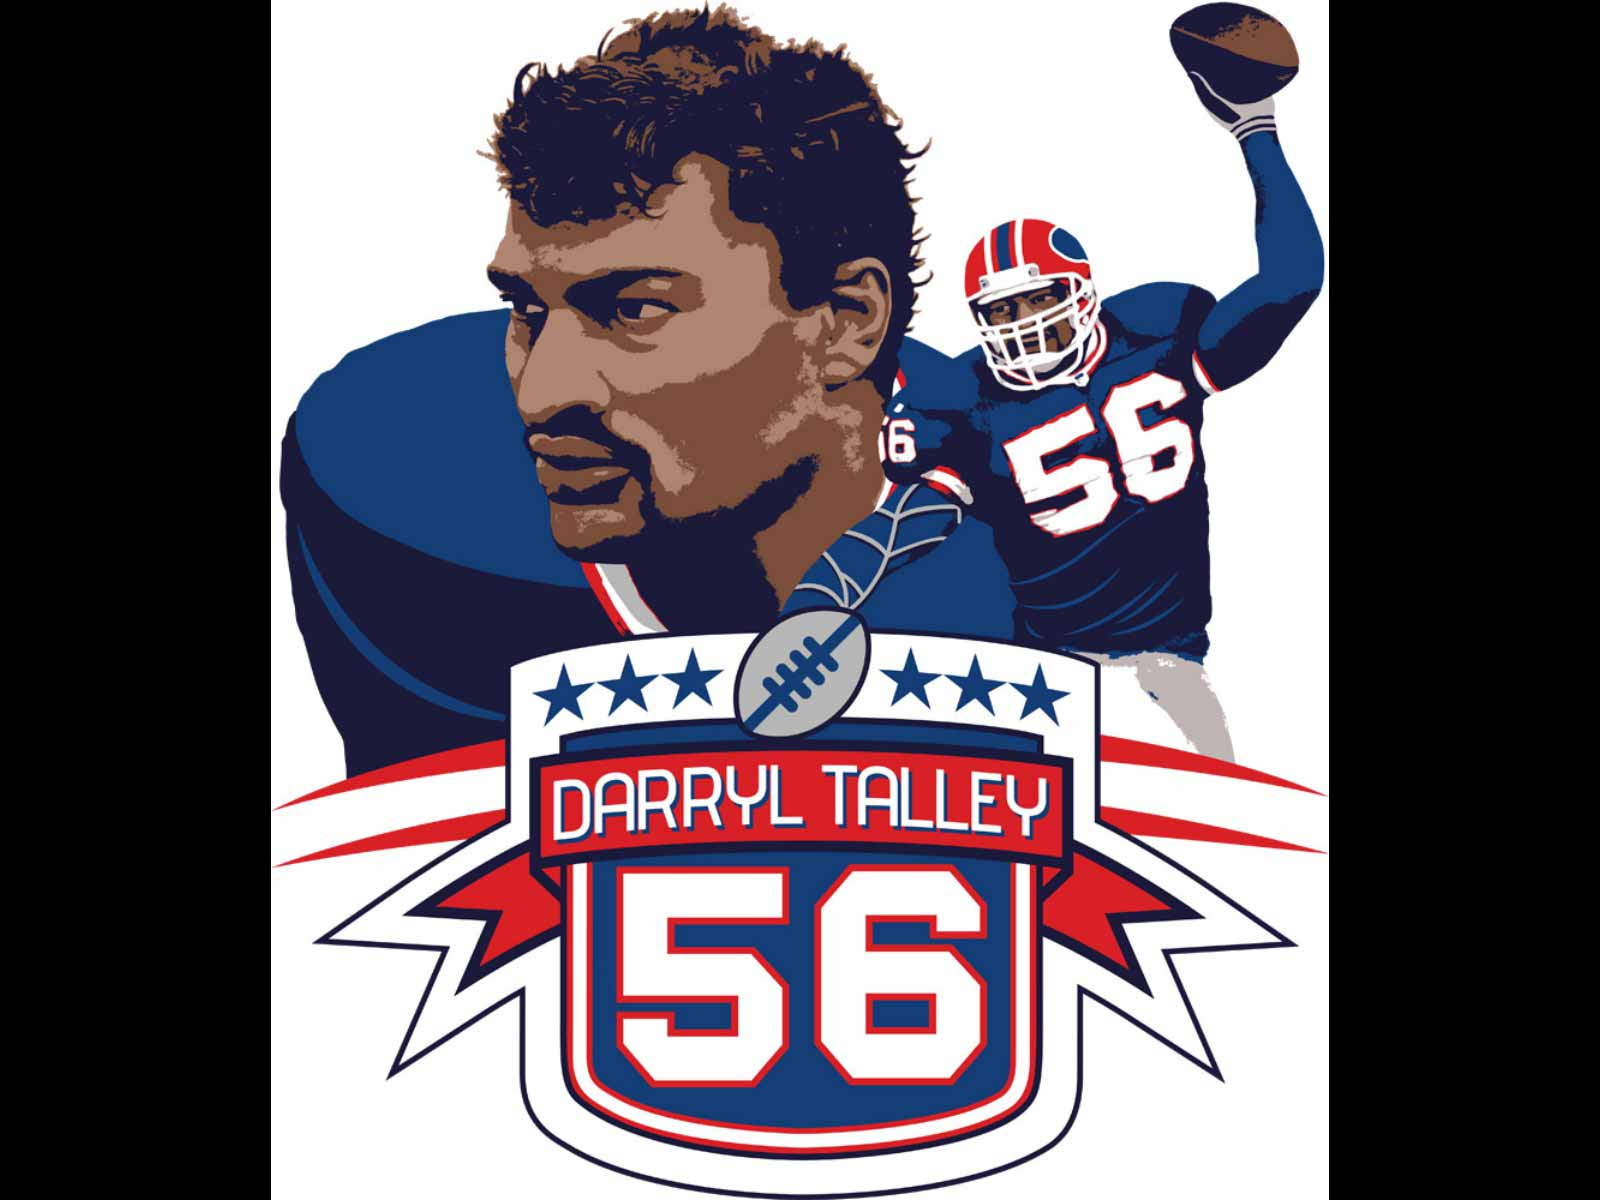 26 Shirts: Darryl Talley